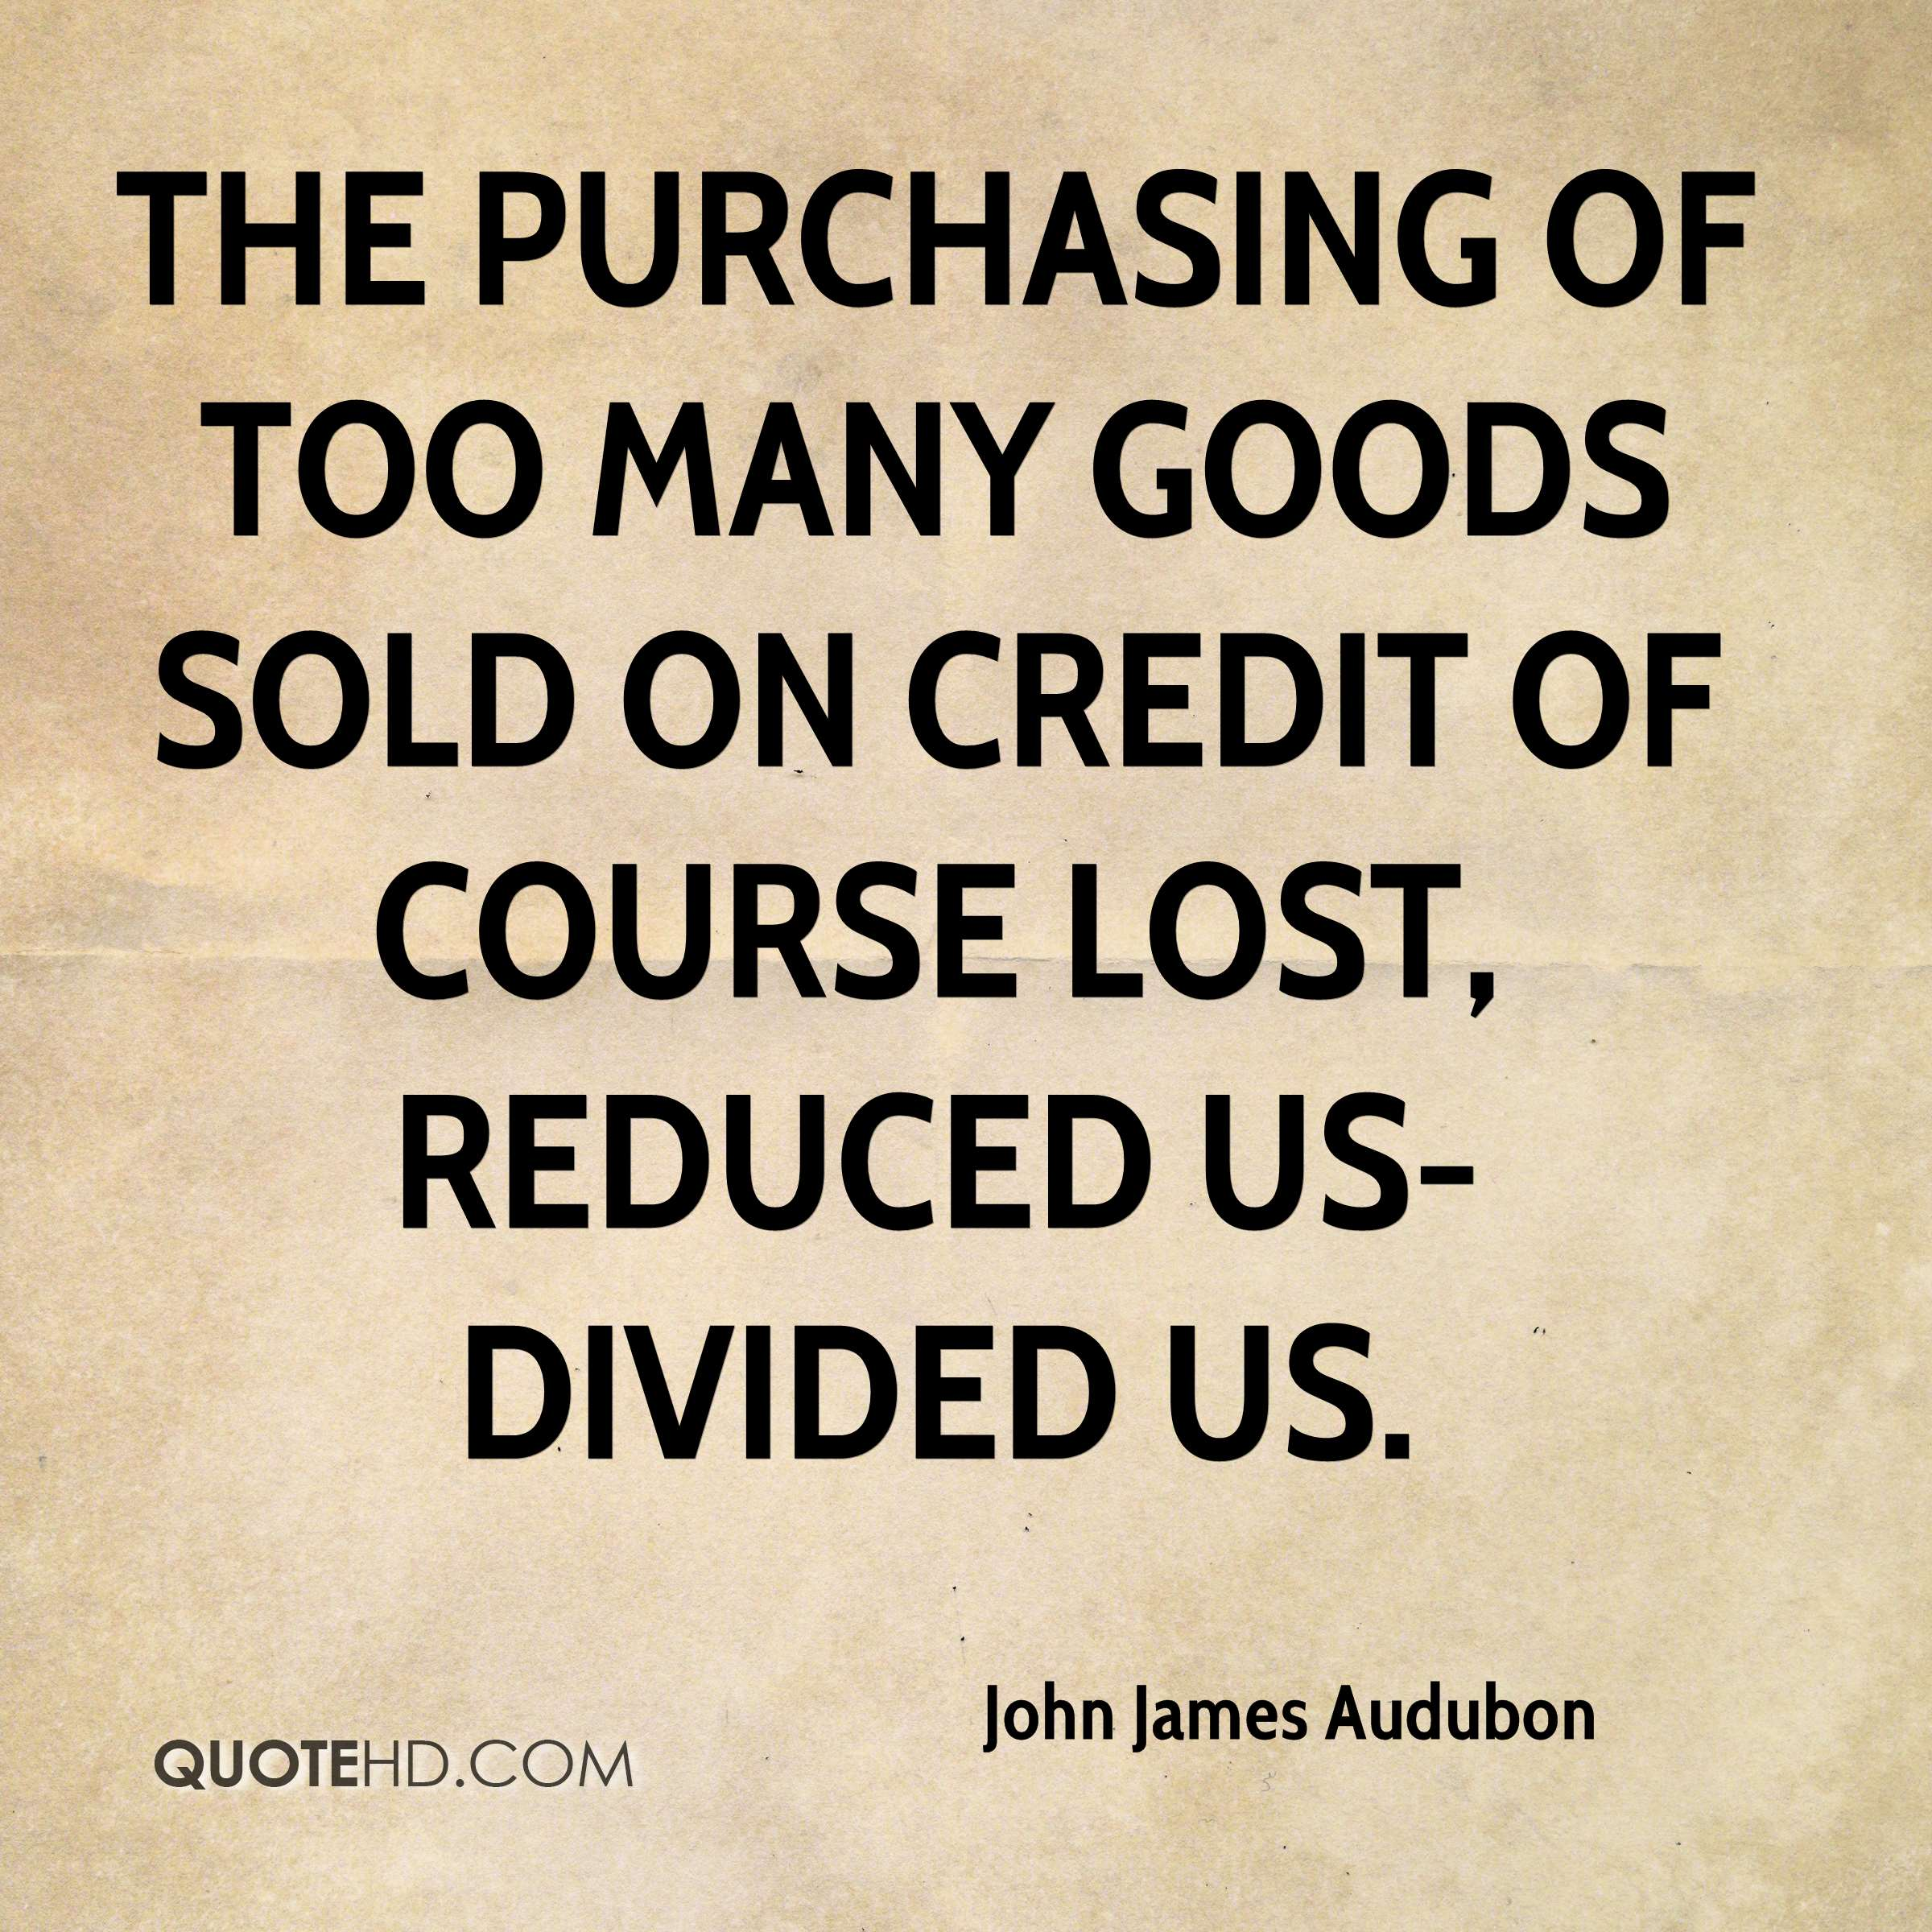 The Purchasing of Too Many goods sold on credit of course Lost, reduced us-Divided us.